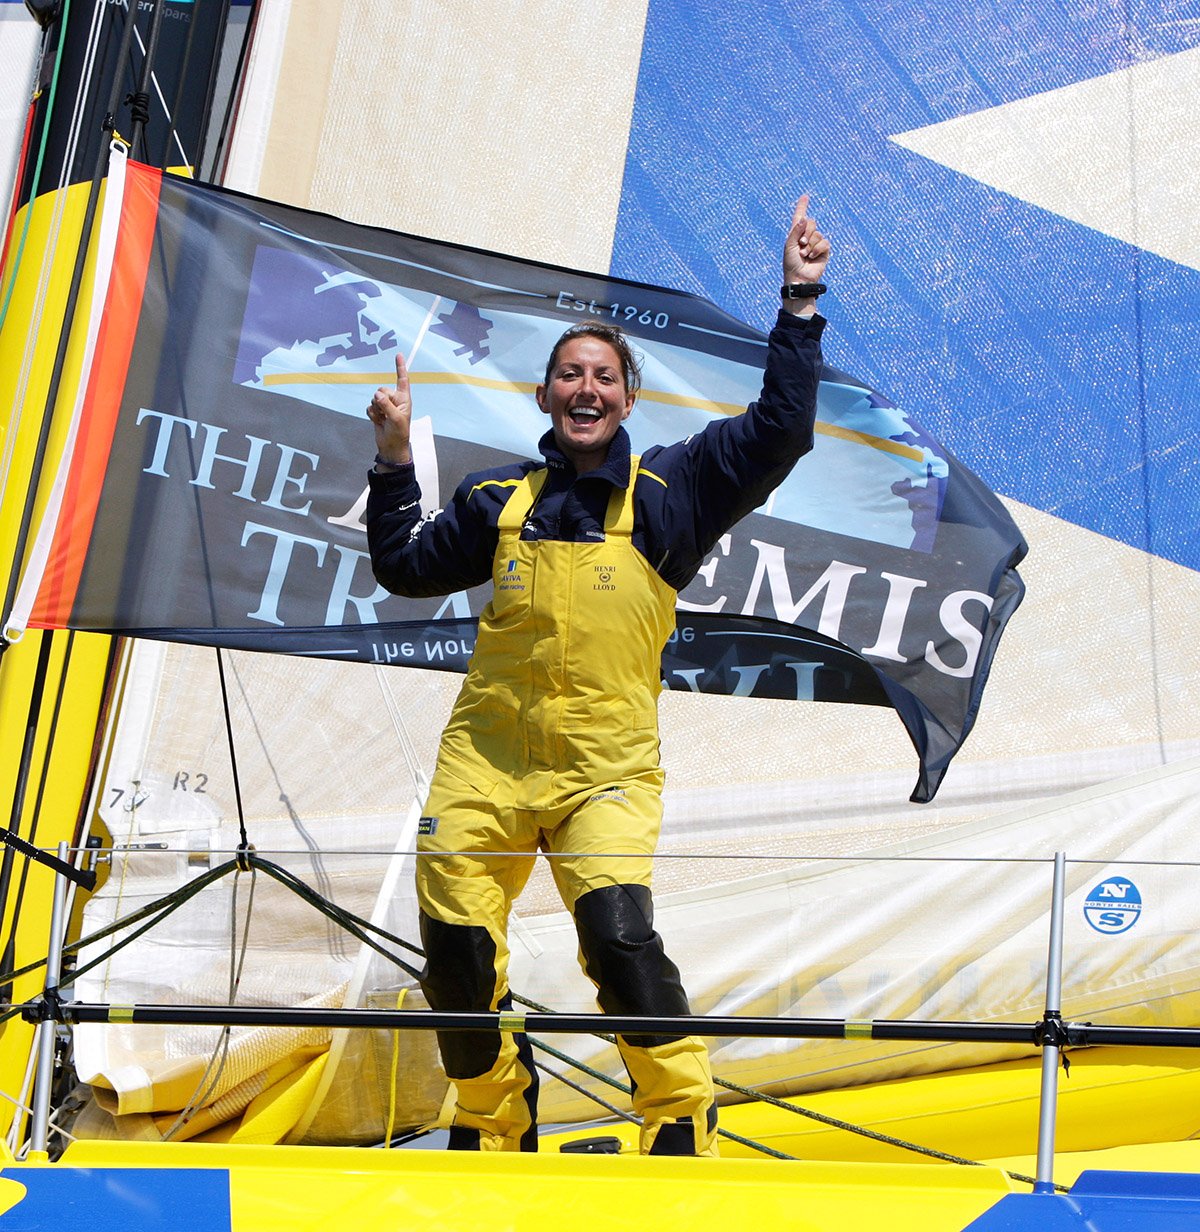 The Artemis Transat